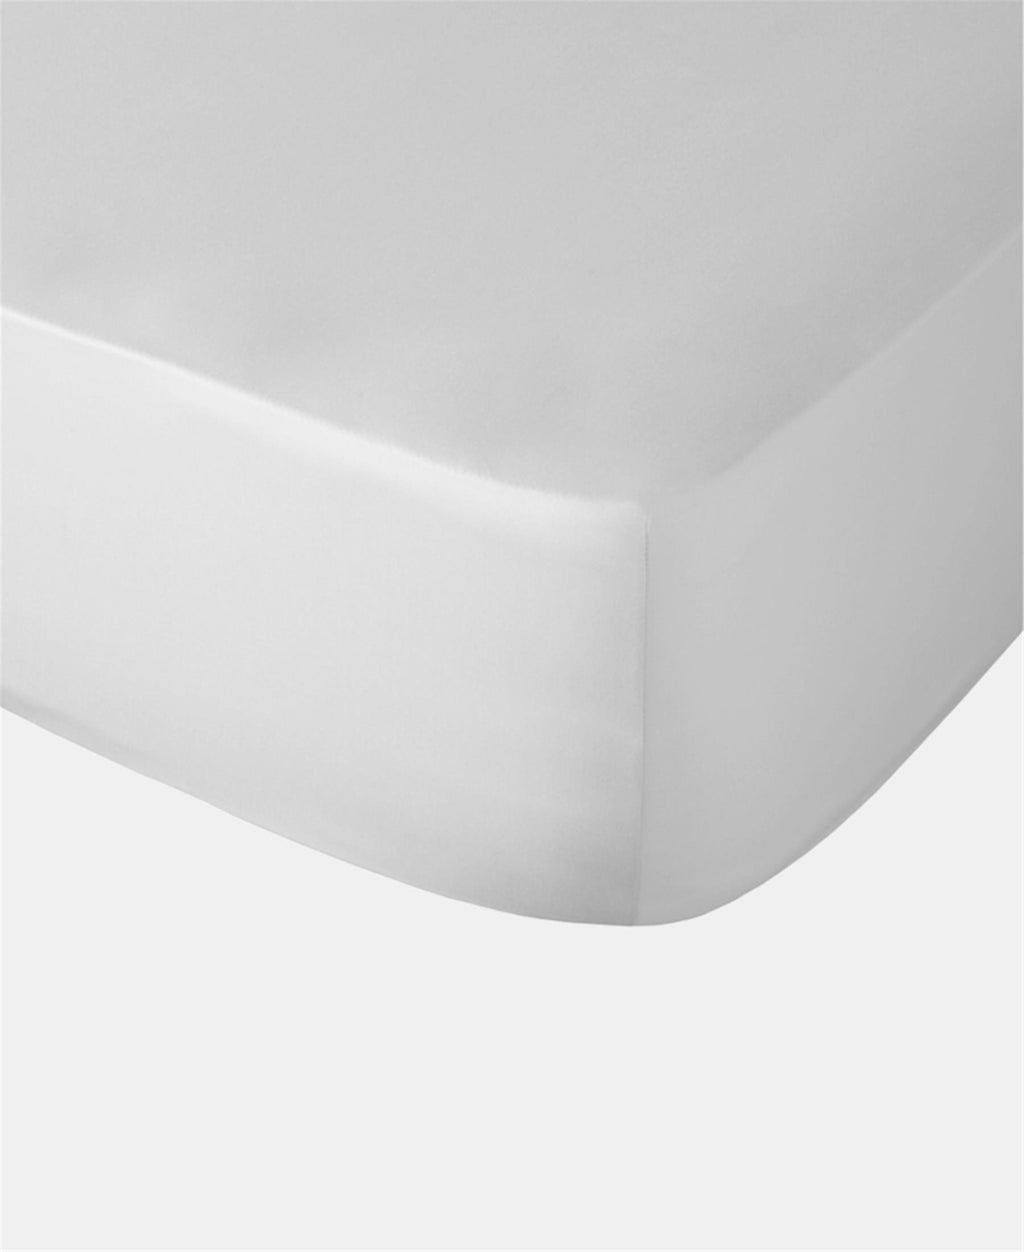 Horrockses 180 Thread Count Fitted Sheet - White